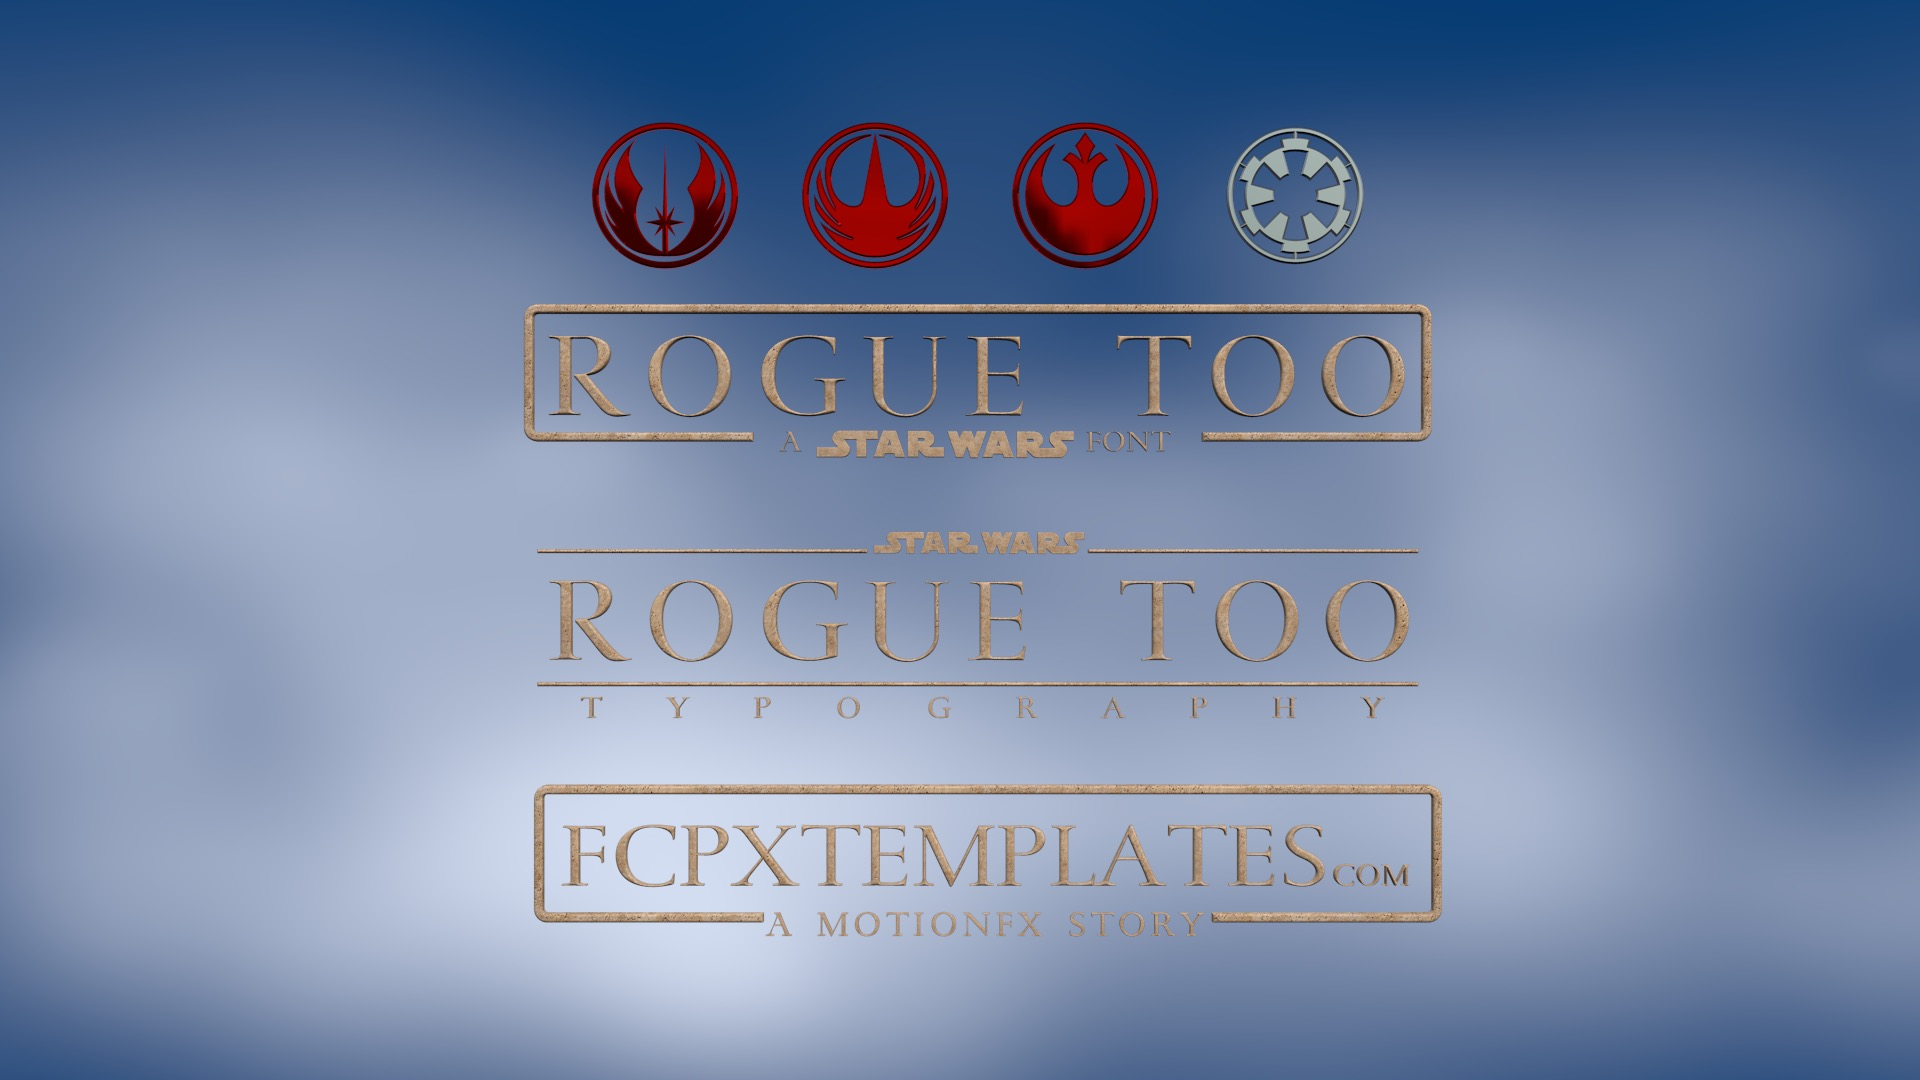 Rogue Too: a font for FCPX Titling – FCPXTemplates